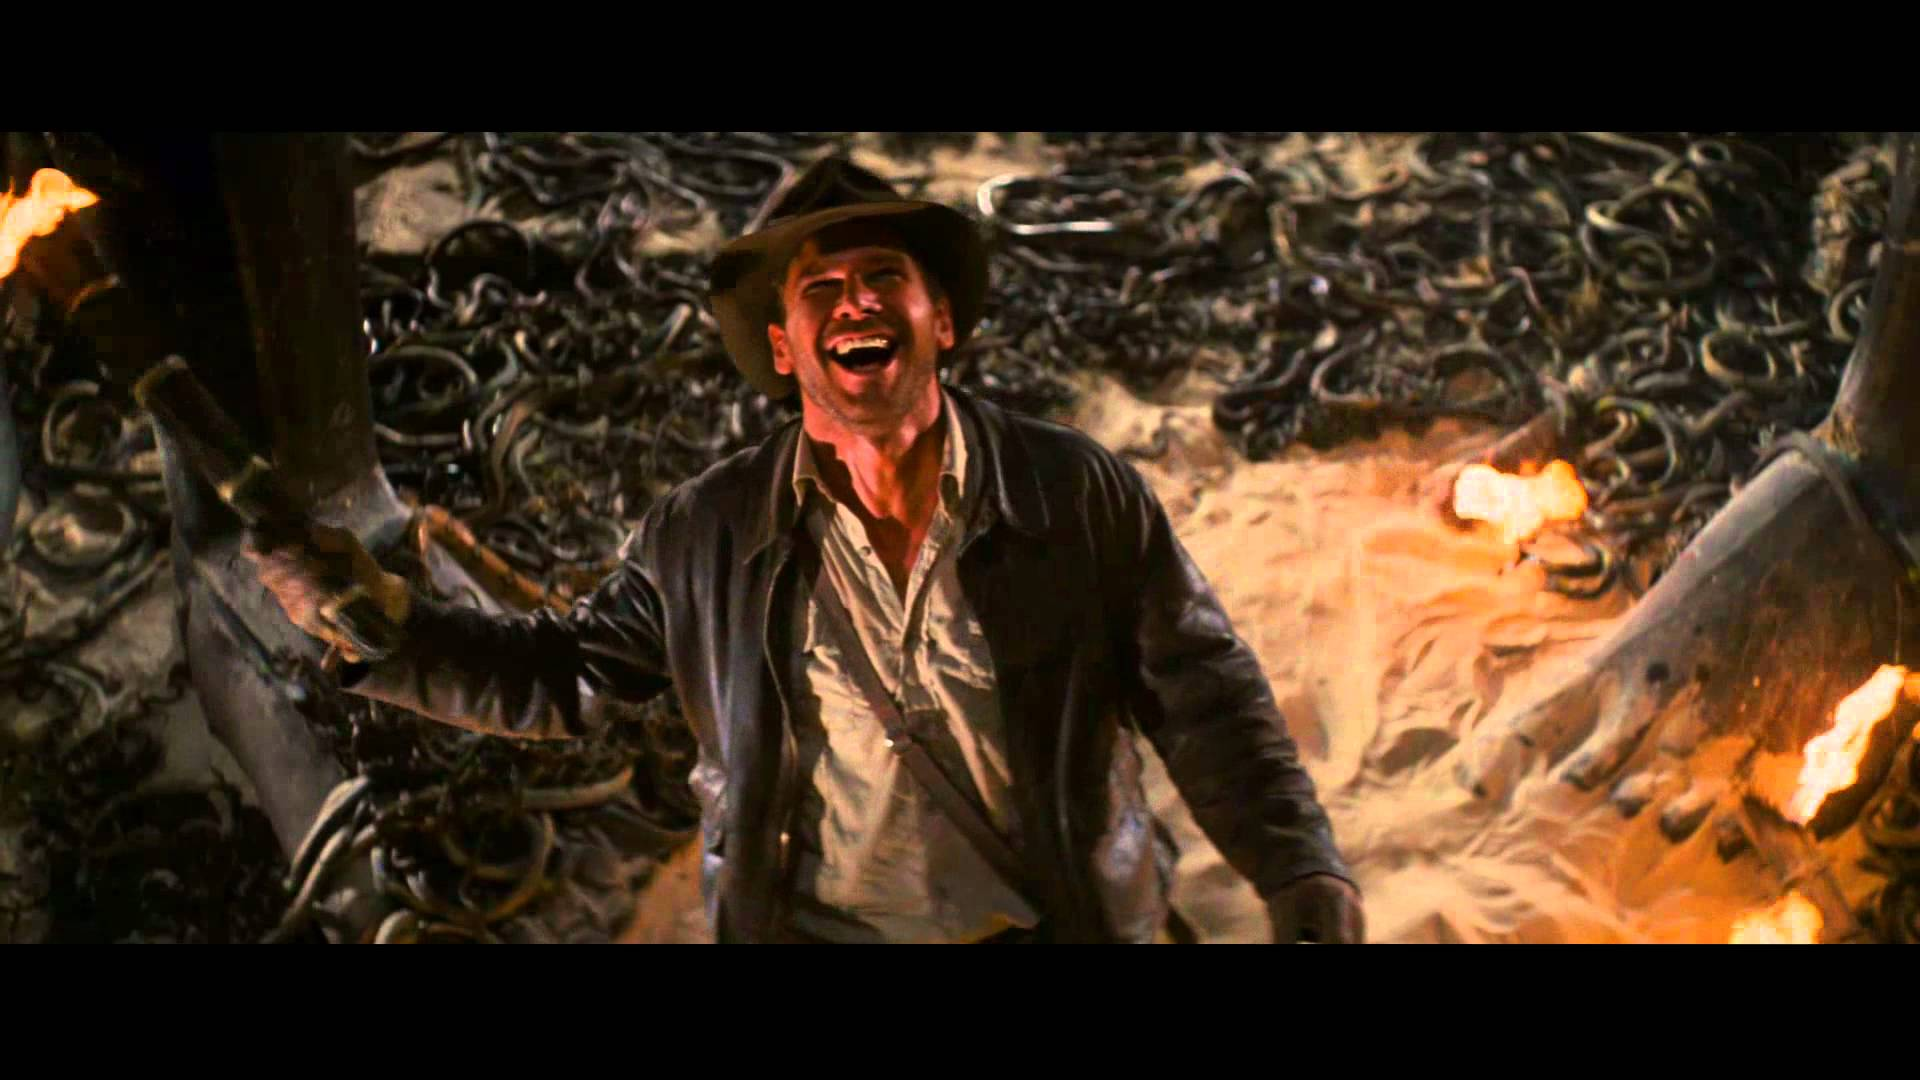 Raiders Of The Lost Ark Wallpaper Image Group 33 1920x1080